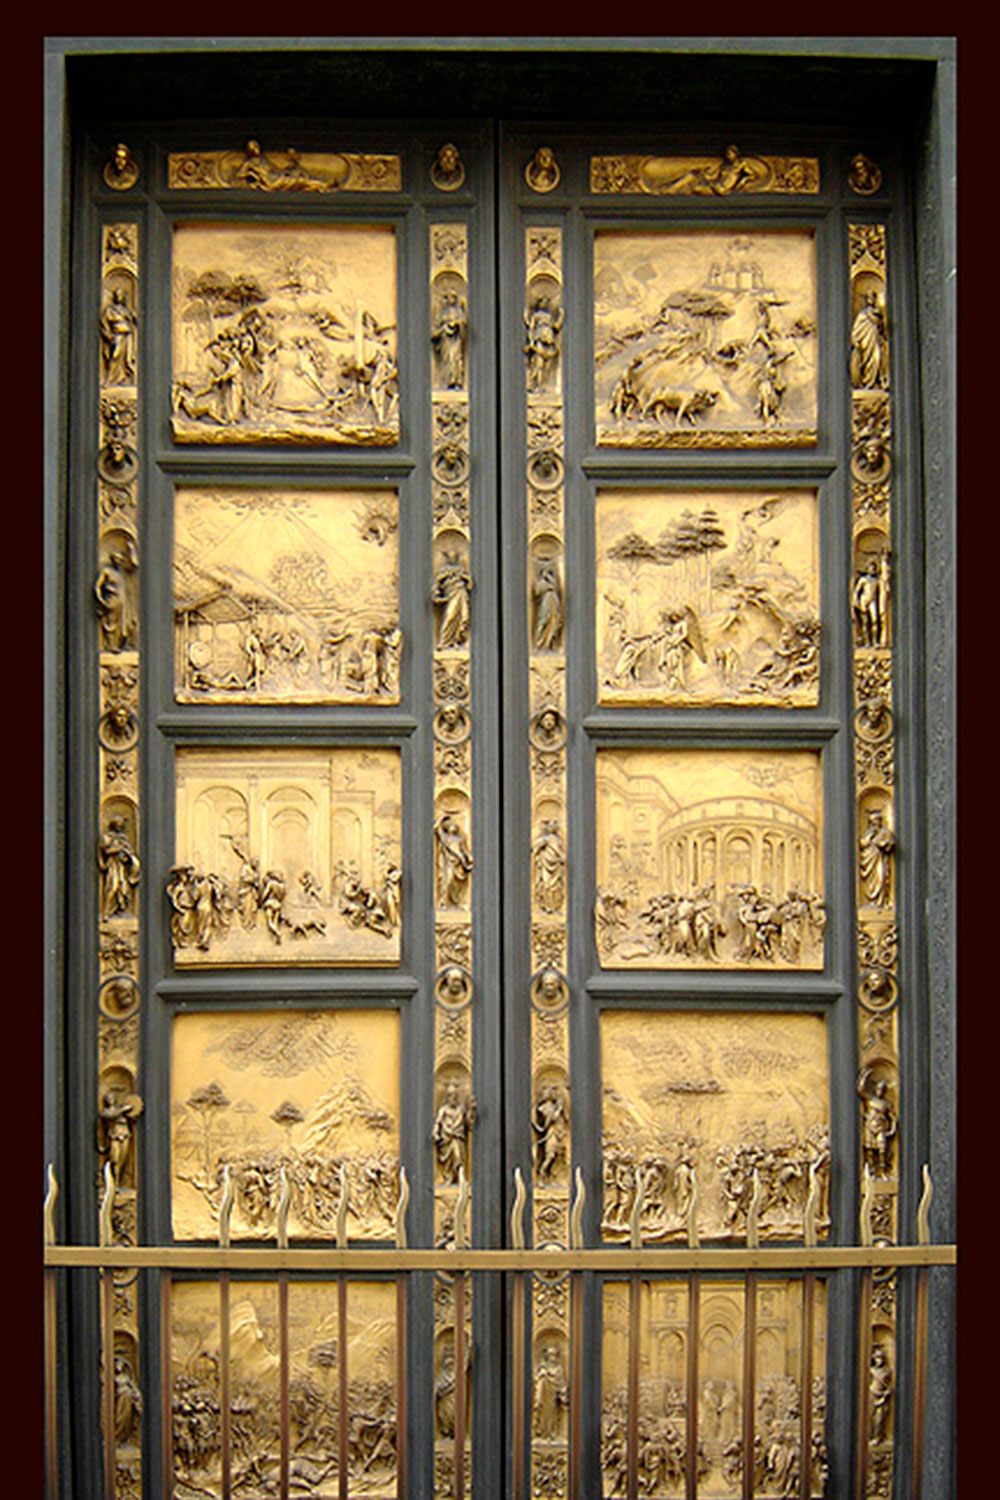 One of the doors at The Florence Baptistery